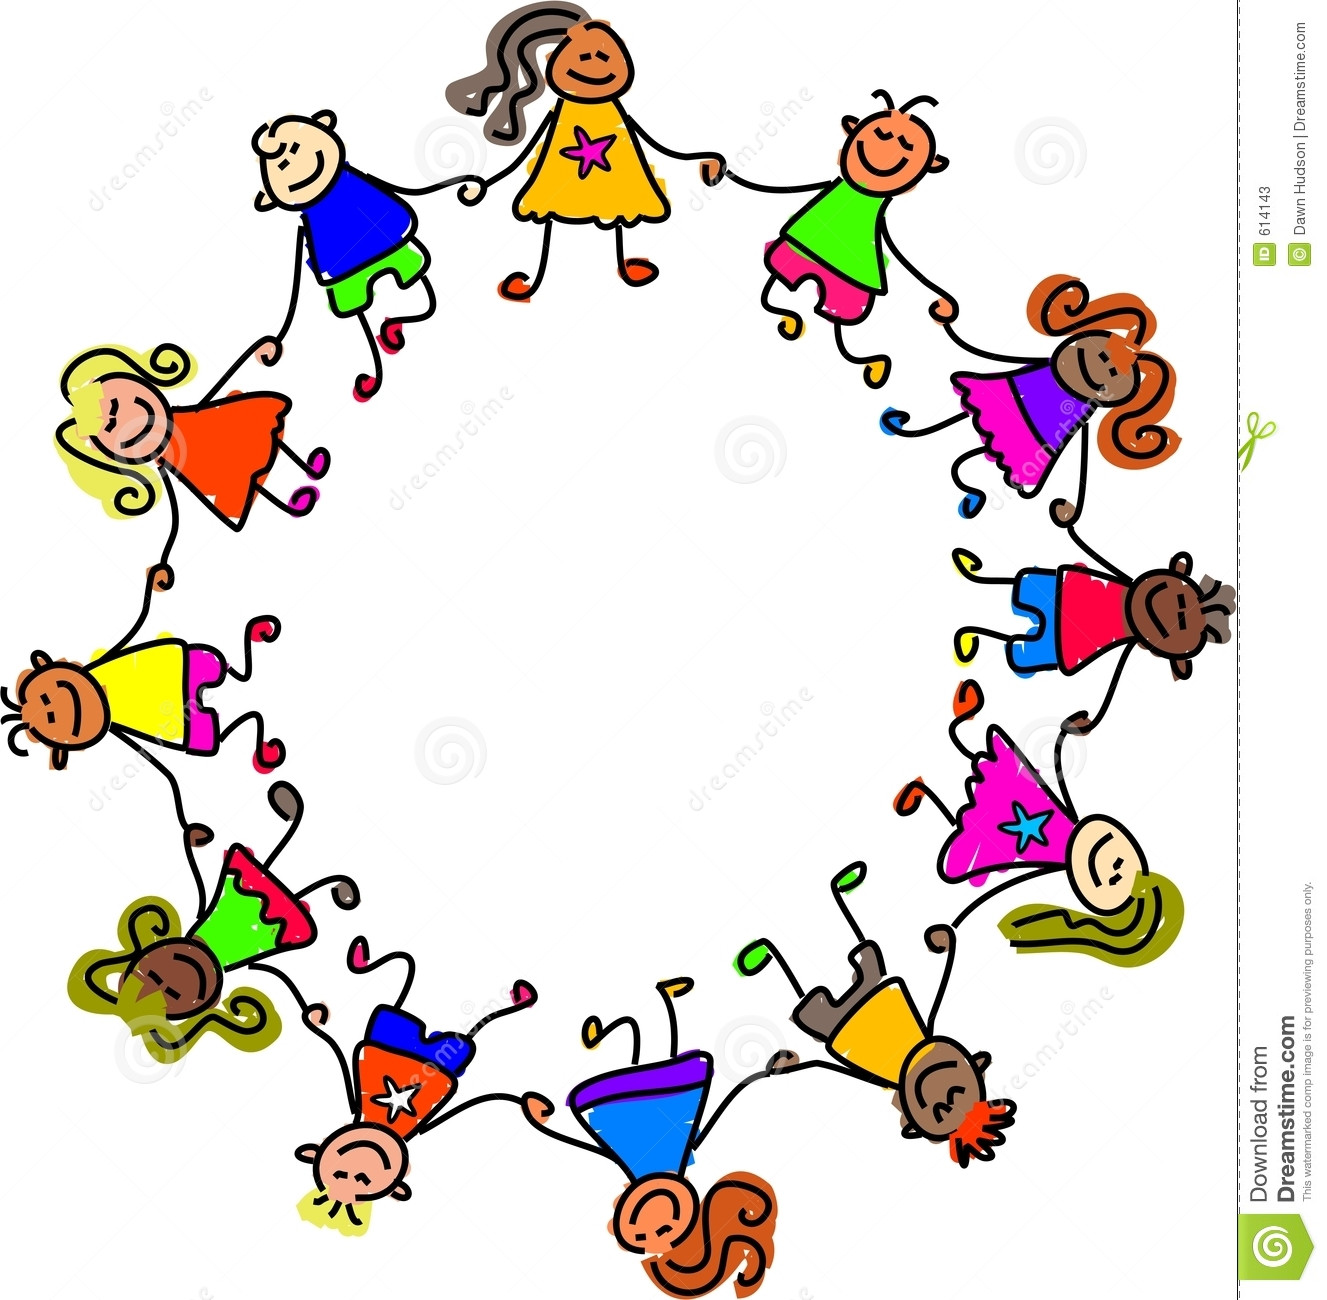 1327x1300 Children Helping Hands Clip Art. Images About Conscious